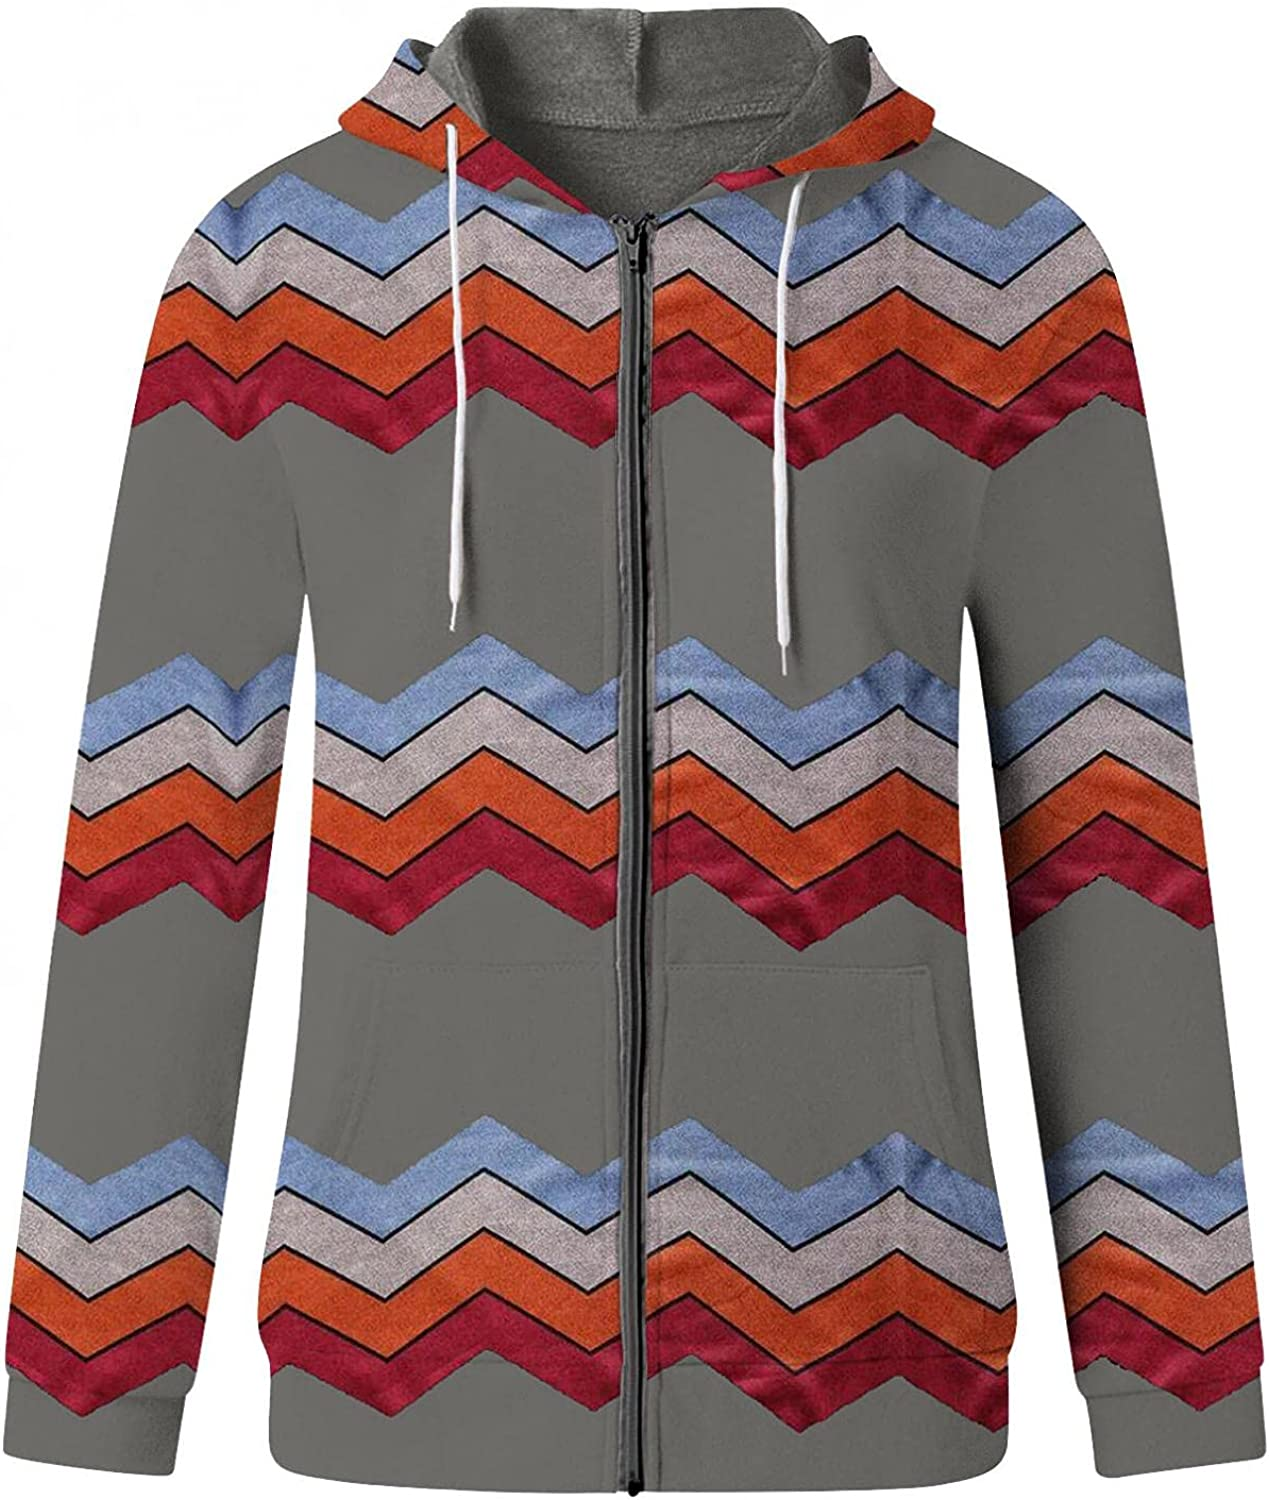 AODONG Womens Zip-Up Hoodie Sweatshirt Long Sleeve Print Lightweight Pullover Casual Stretchy Tunic Jacket with Pockets